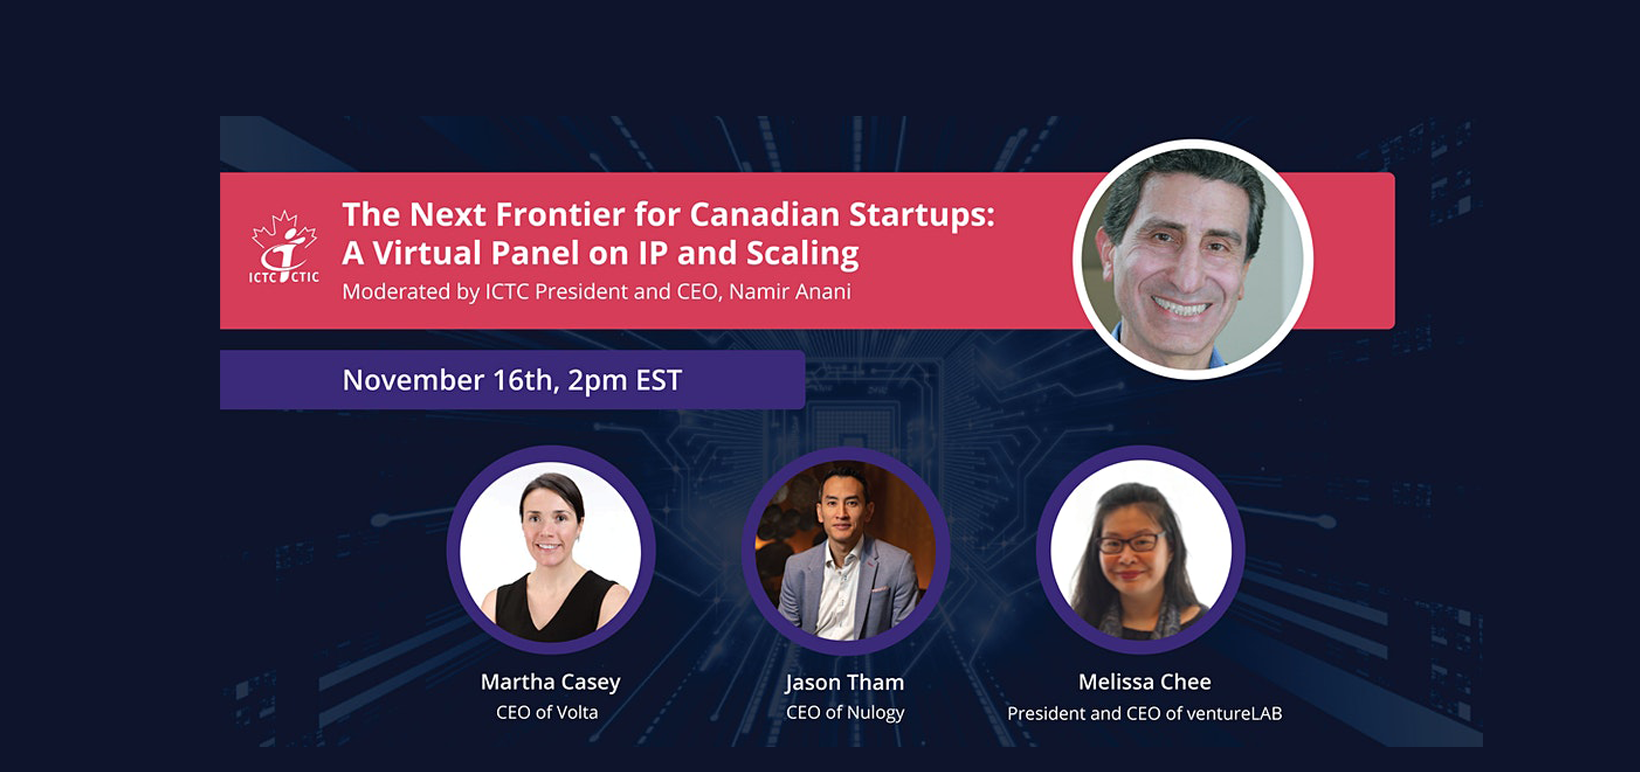 The Next Frontier for Canadian Startups: A Virtual Panel on IP and Scaling